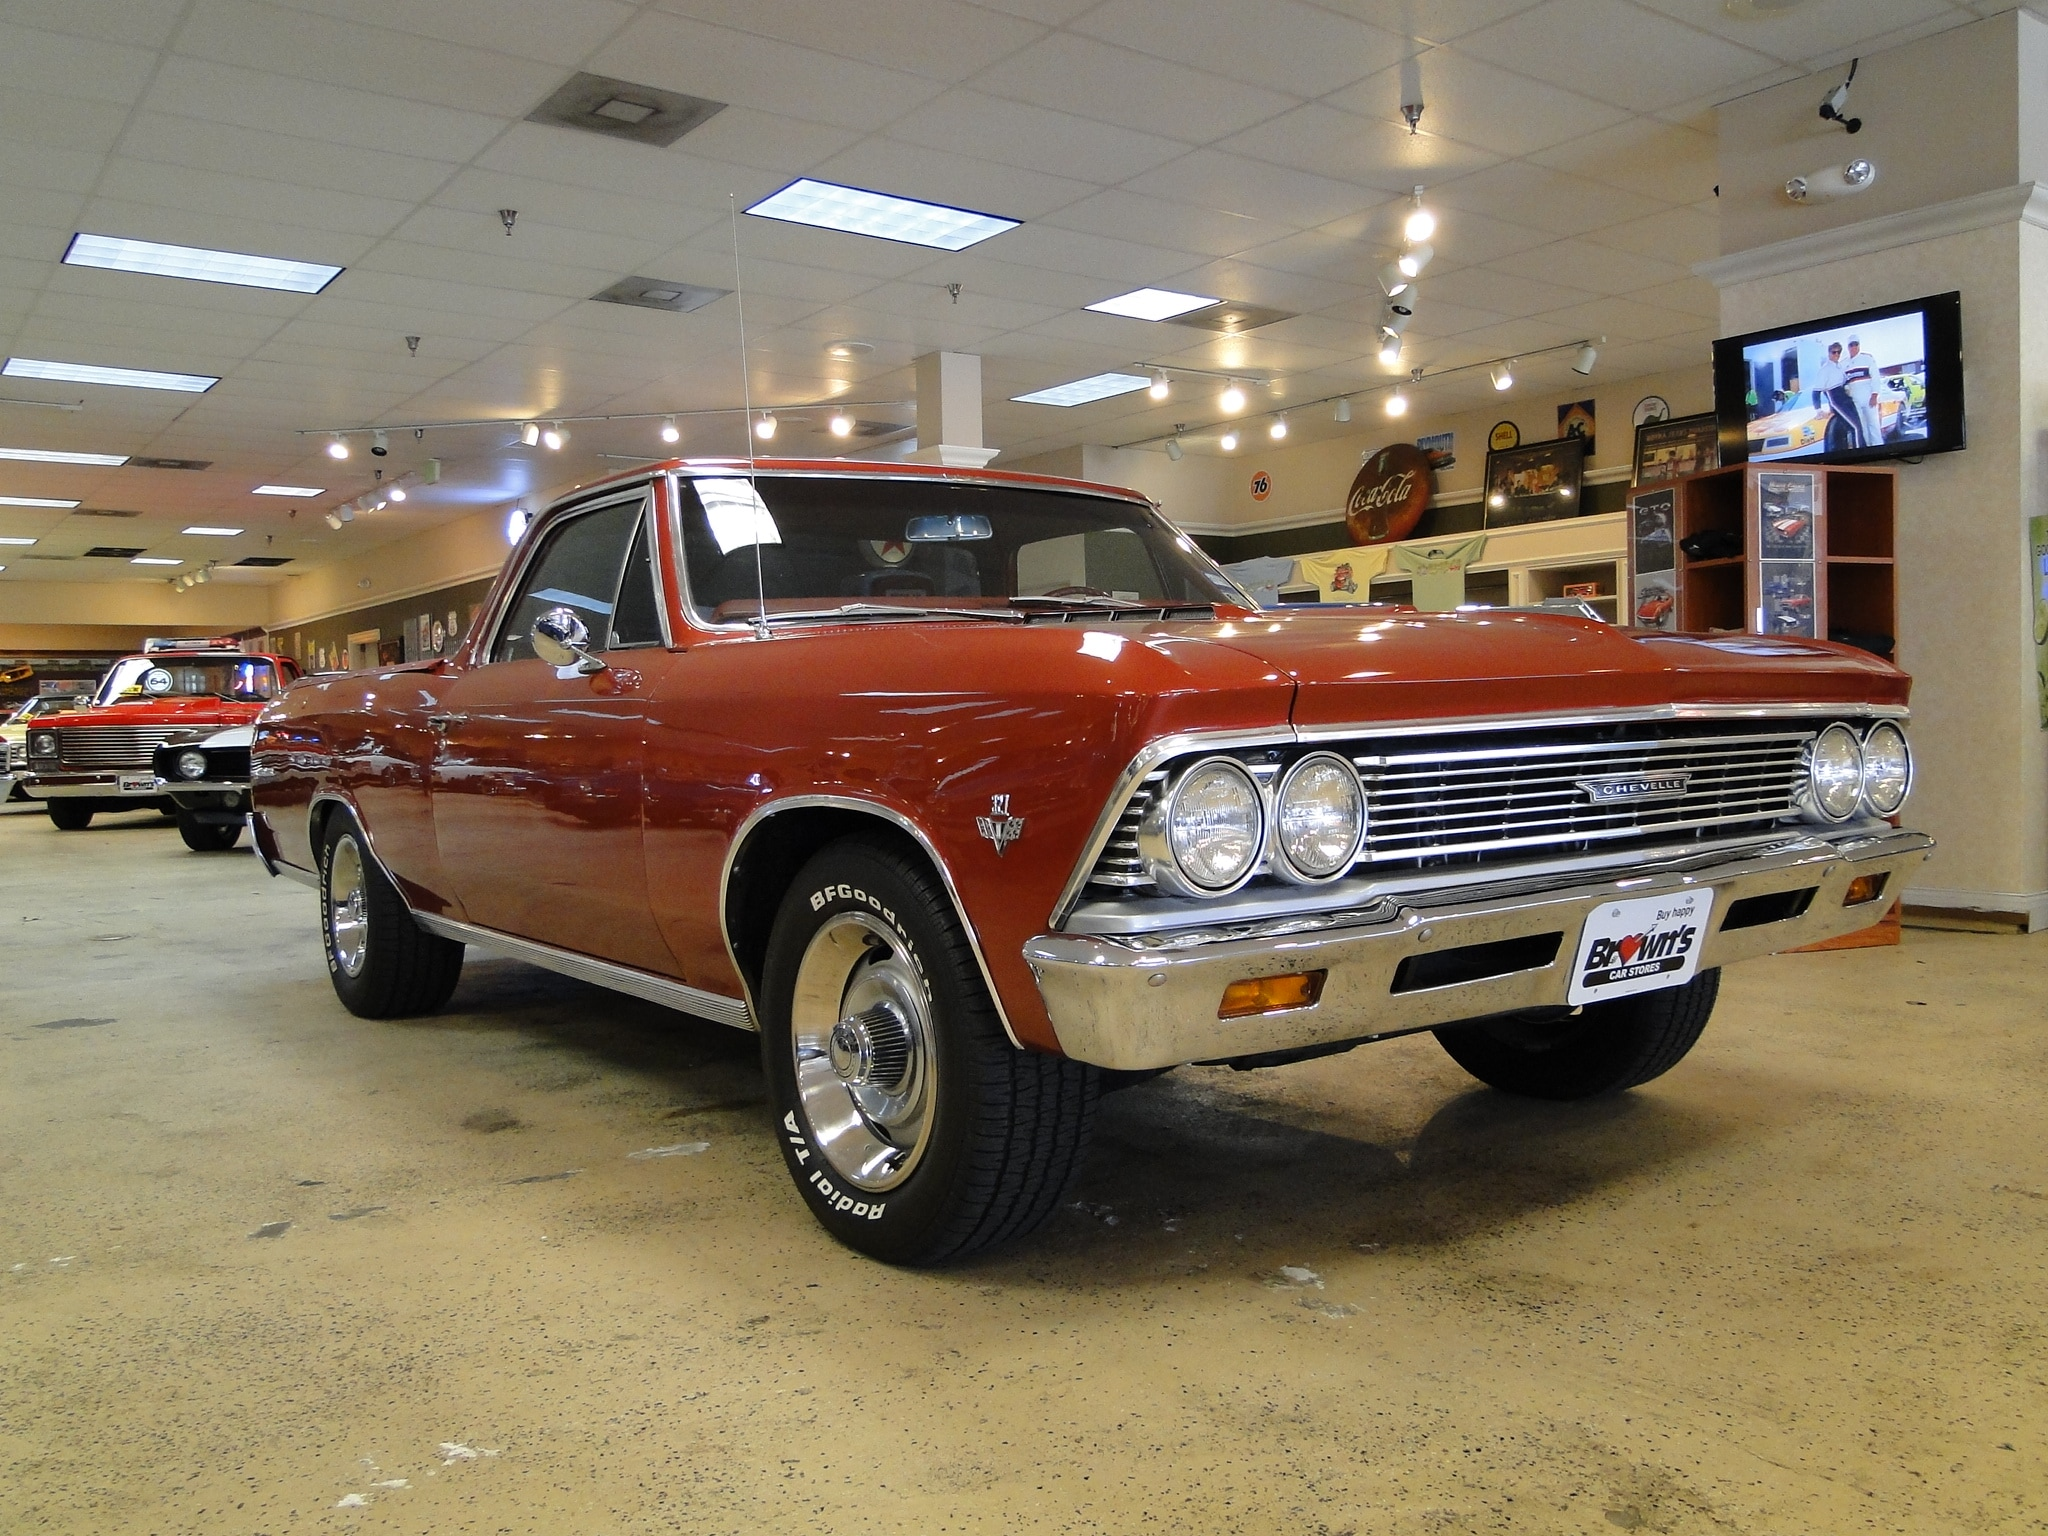 1966 Chevrolet El Camino SOLD TO KUWAIT! Truck Glen Burnie MD